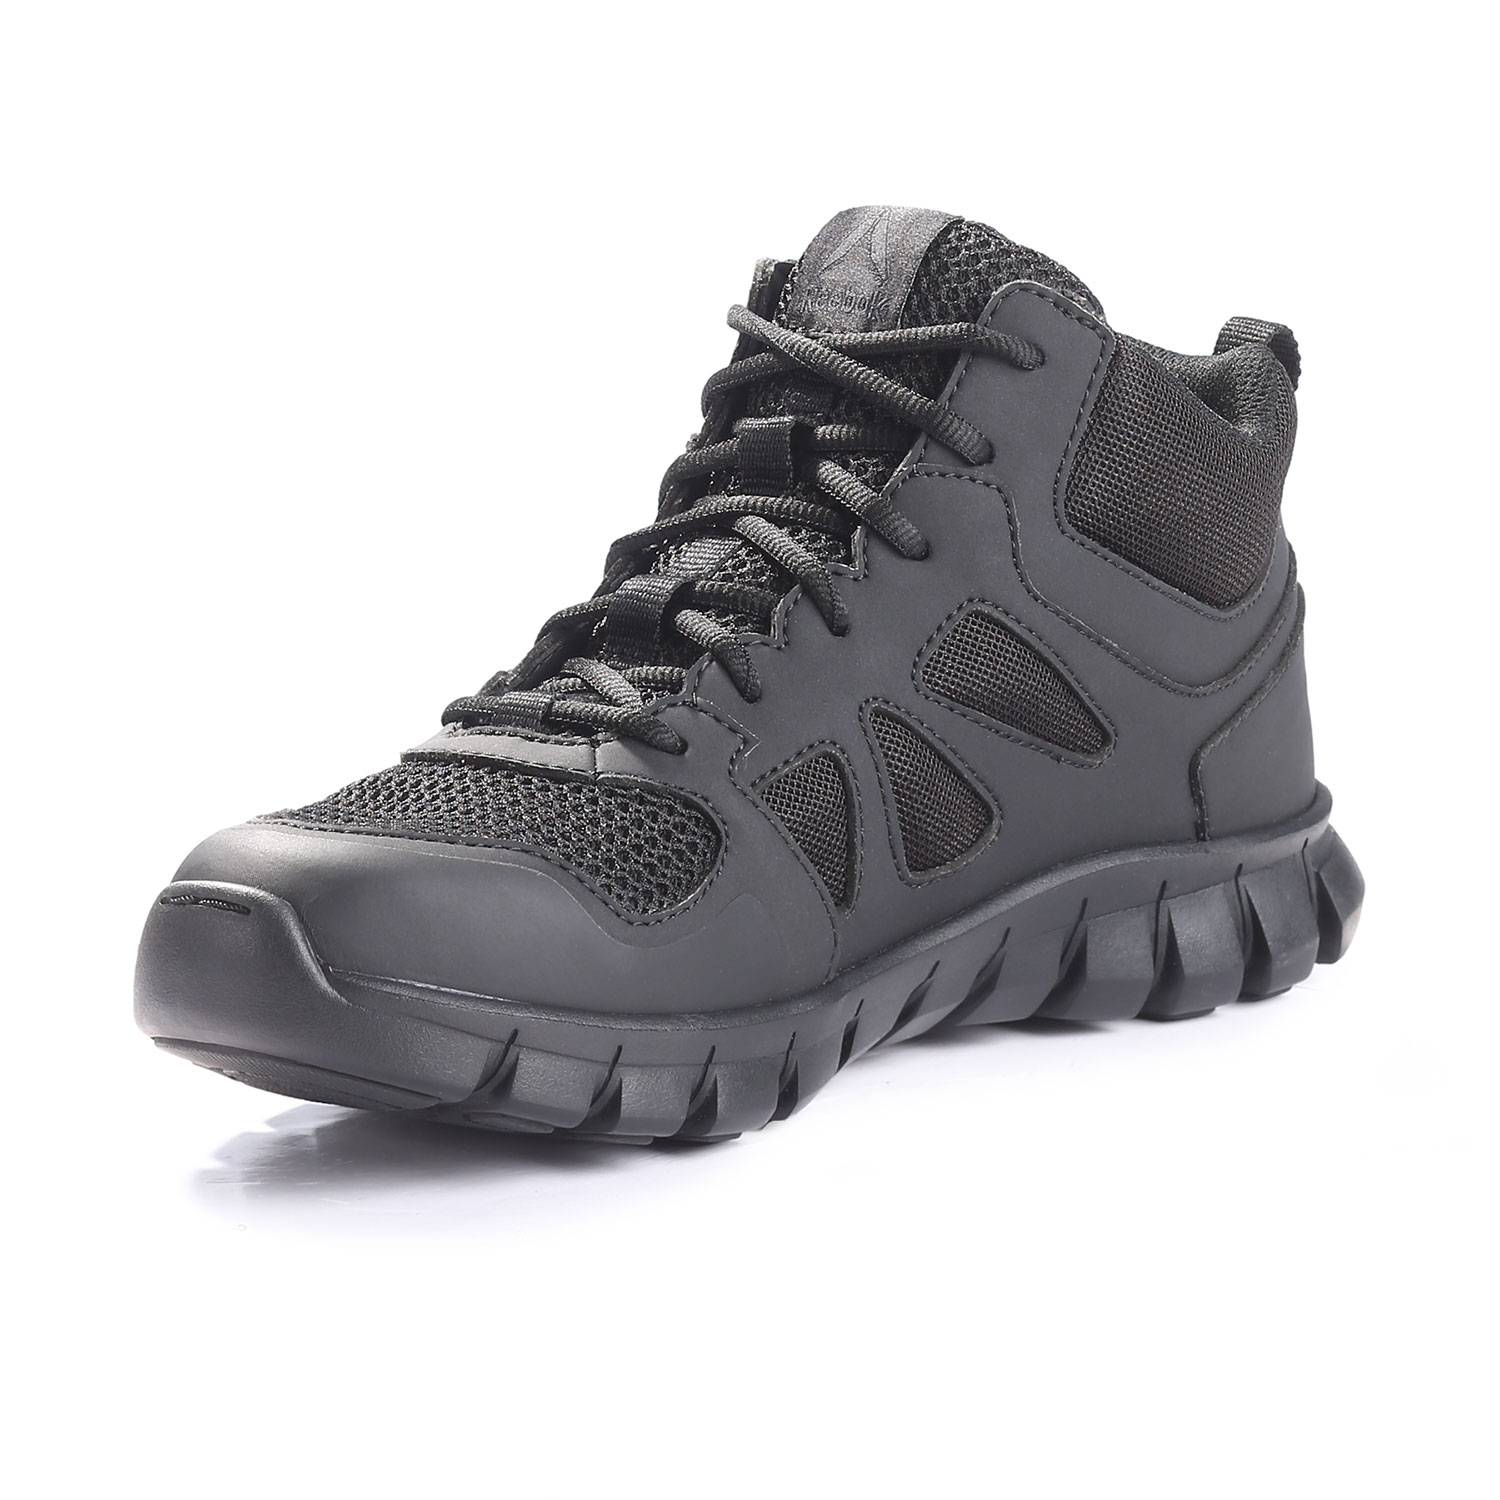 Reebok Womens Sublite Cushion Tactical Mid